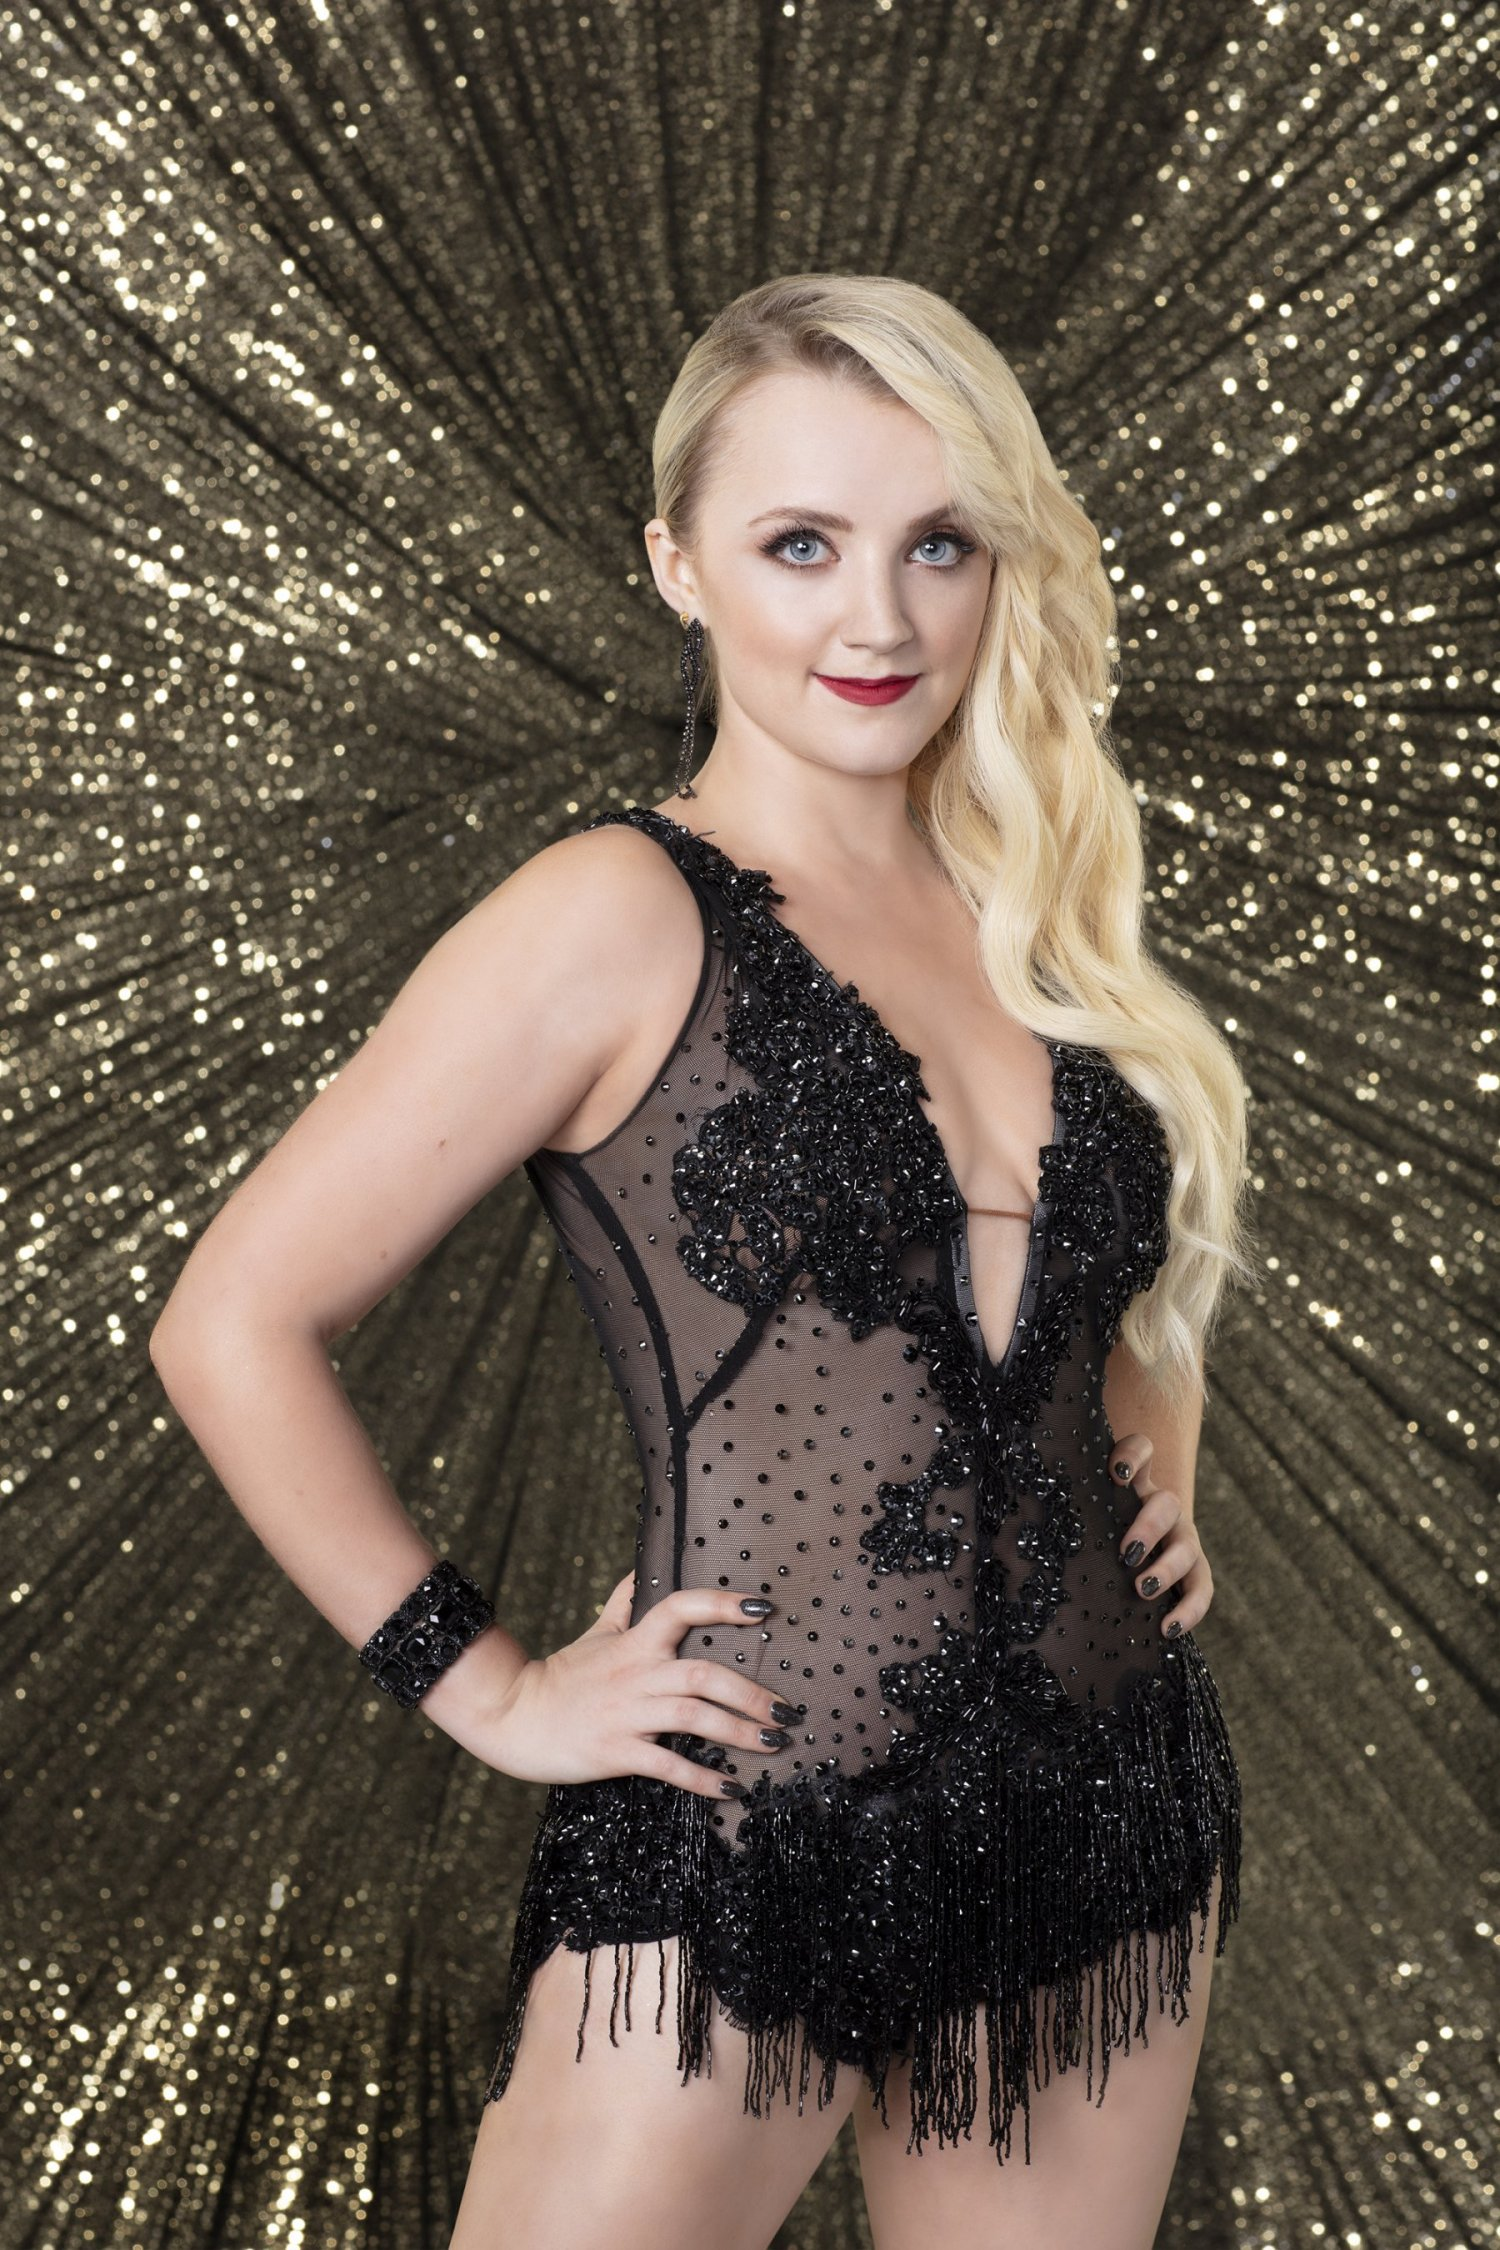 Evanna Lynch Hot Bikini Pictures Proves She Is Hottest